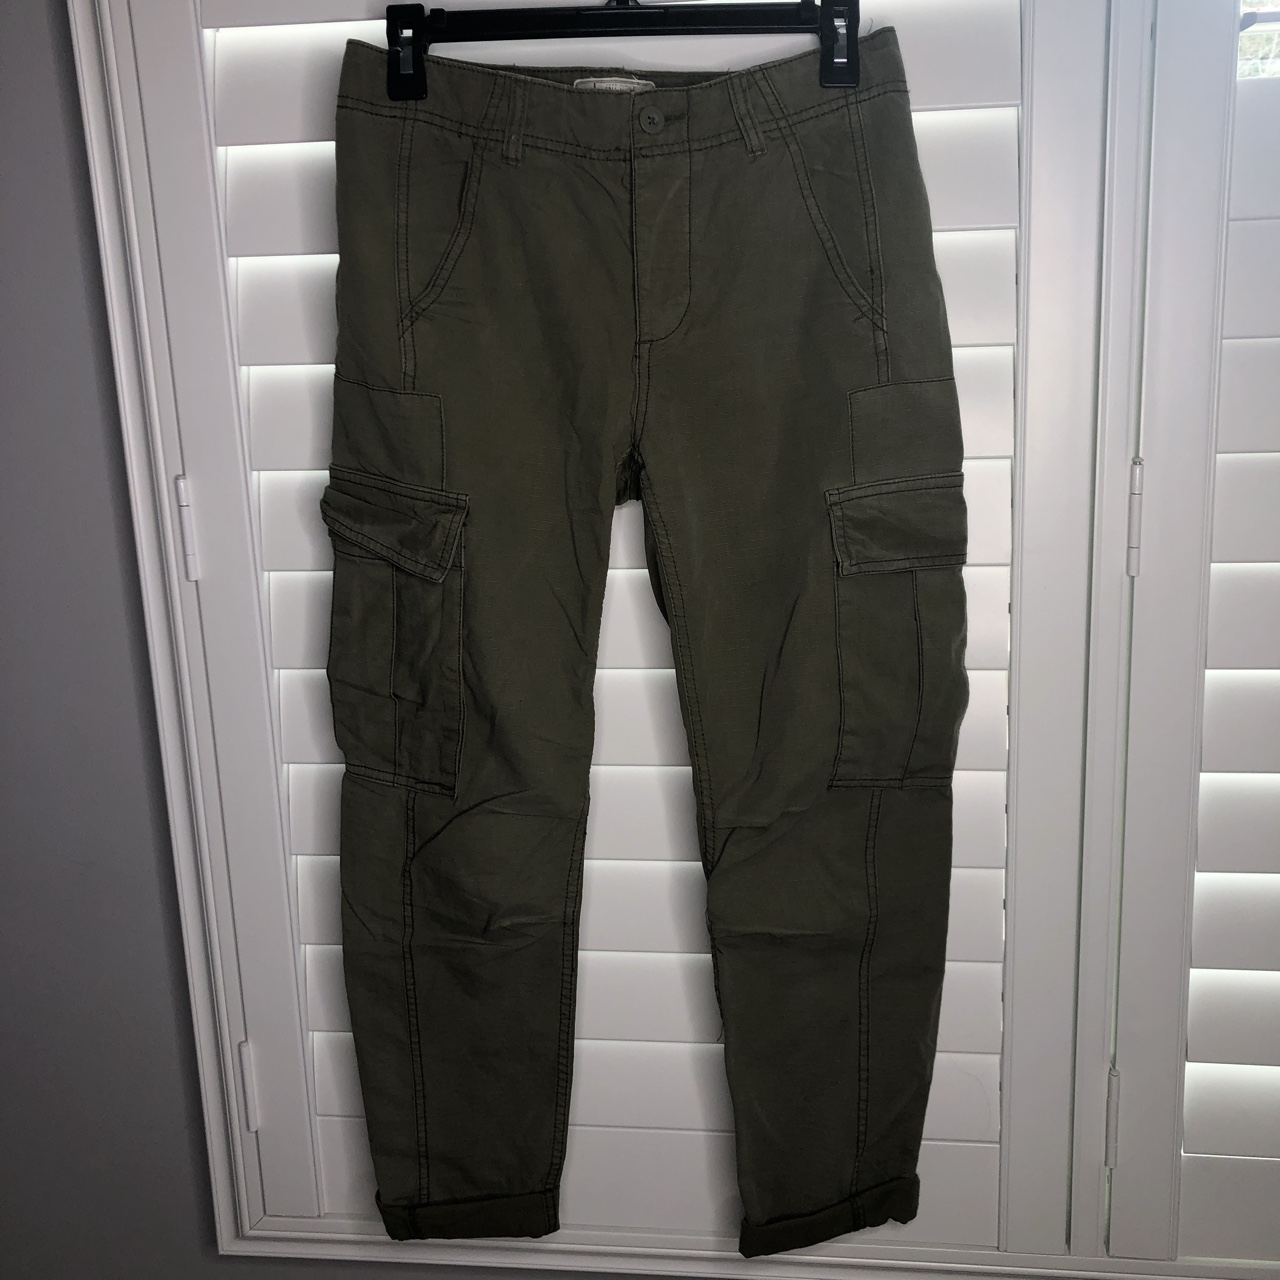 Free People Army Green Cargo Pants Very Loose Fit Depop